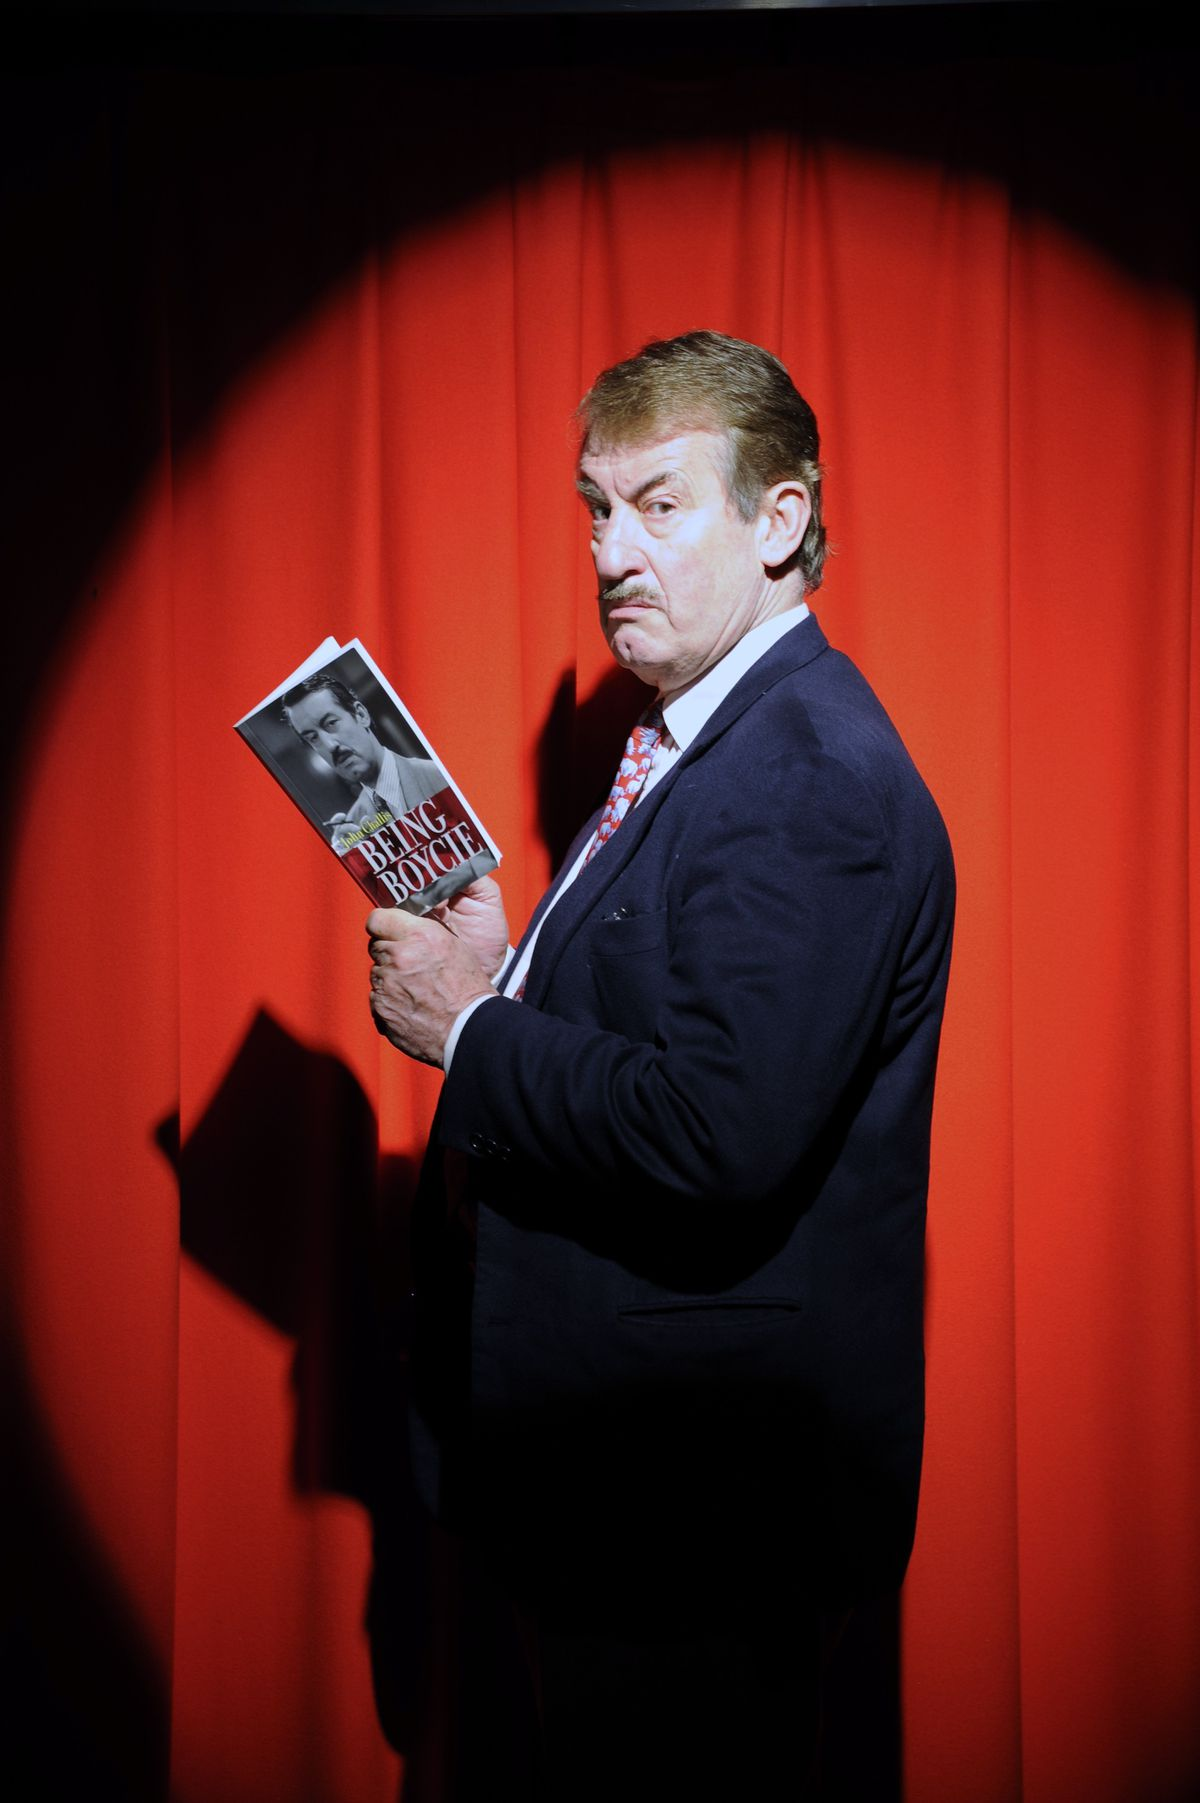 John Challis in Only Fools and Boycie